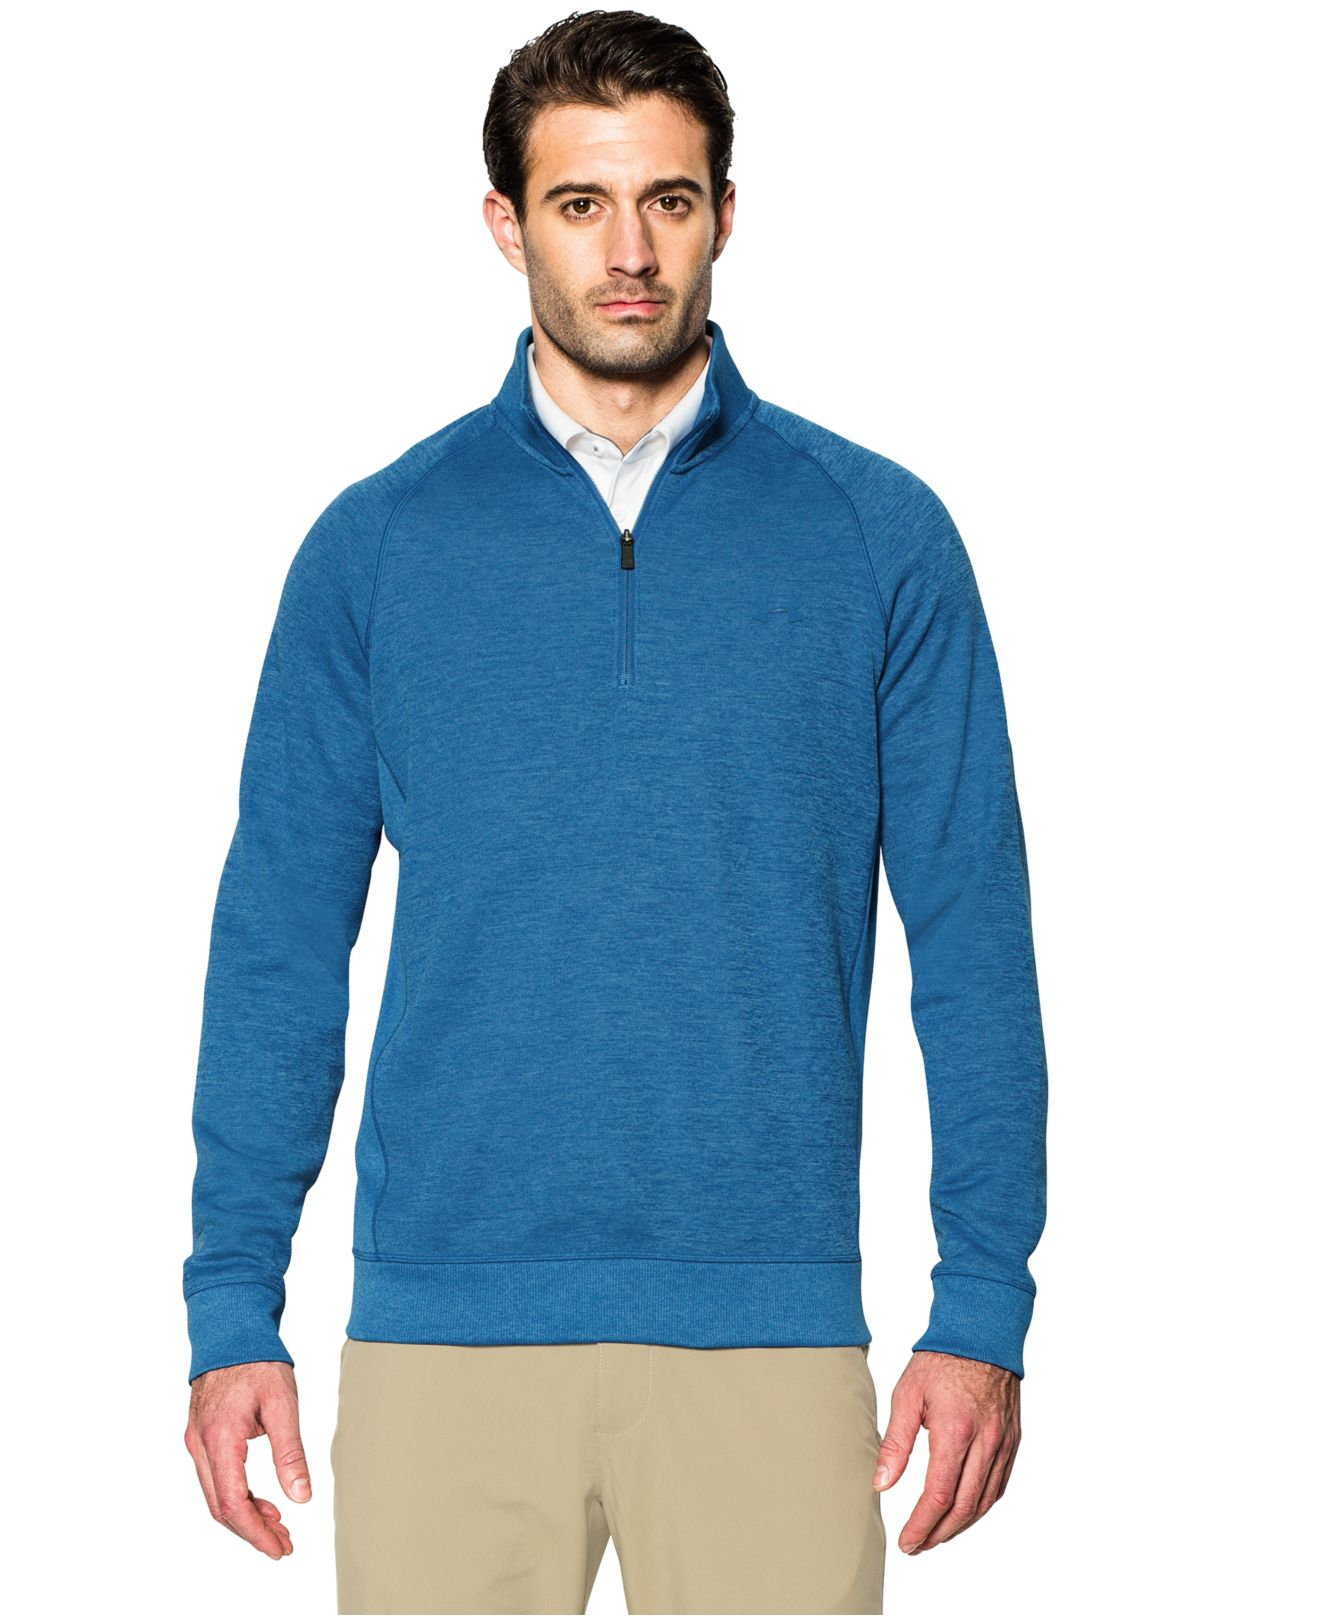 Under armour men 39 s quarter zip storm fleece golf sweater for Flannel shirt under sweater